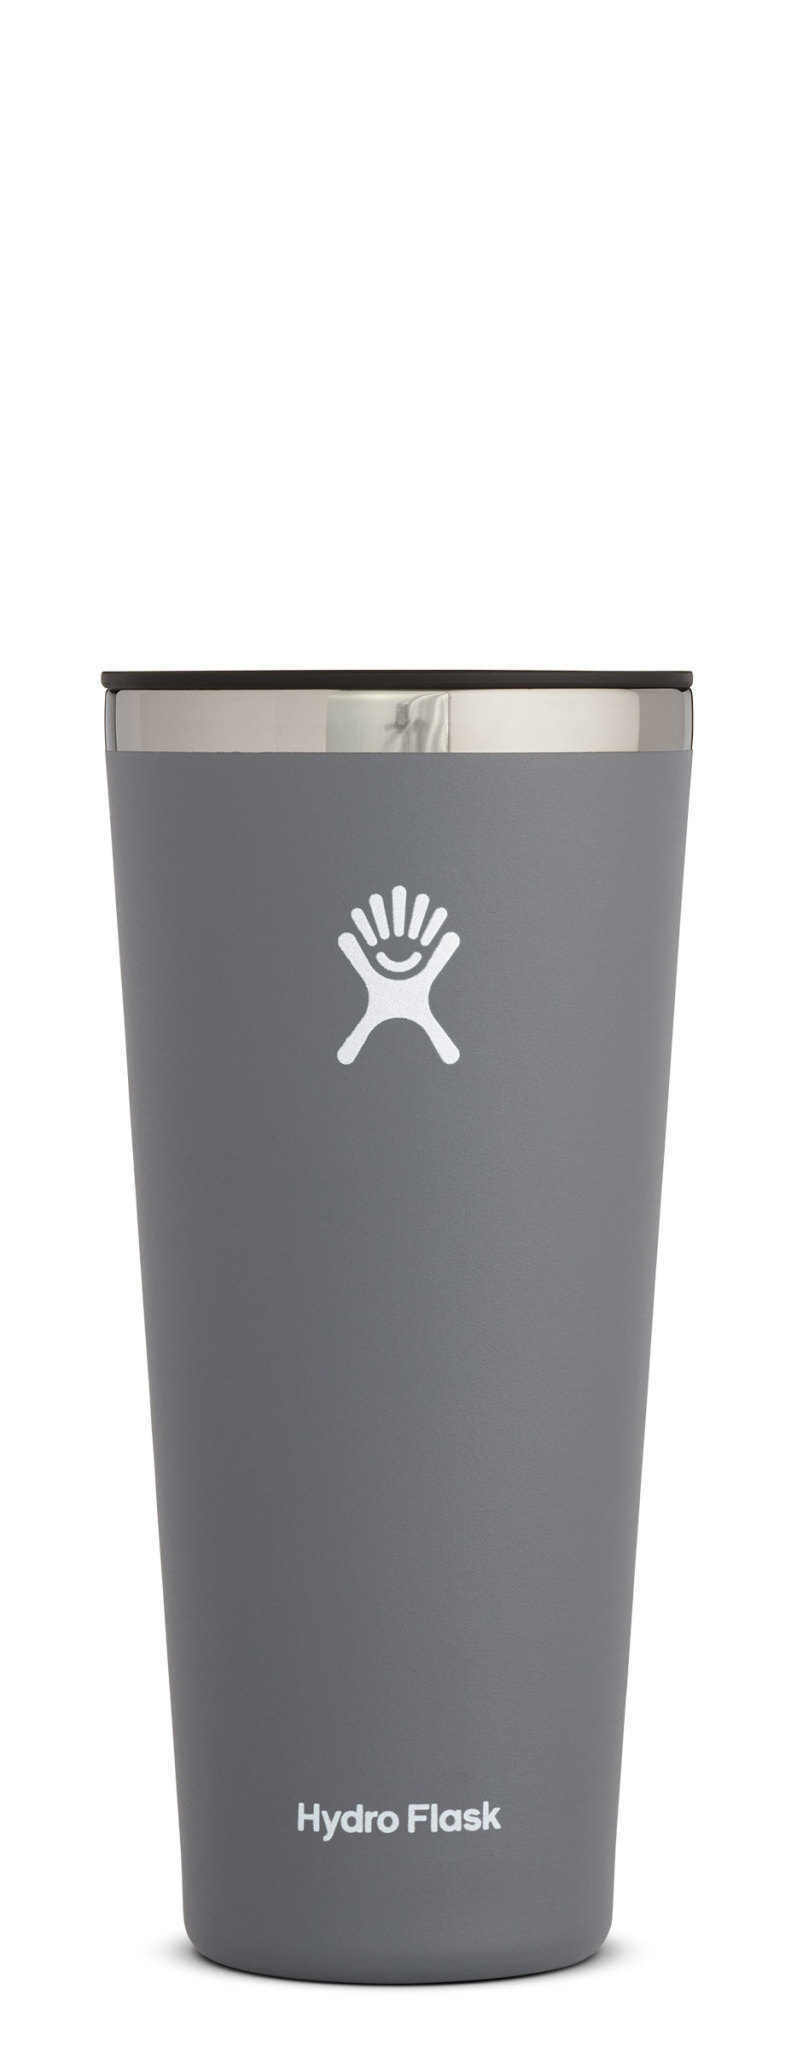 Hydro Flask 32oz Tumbler-4